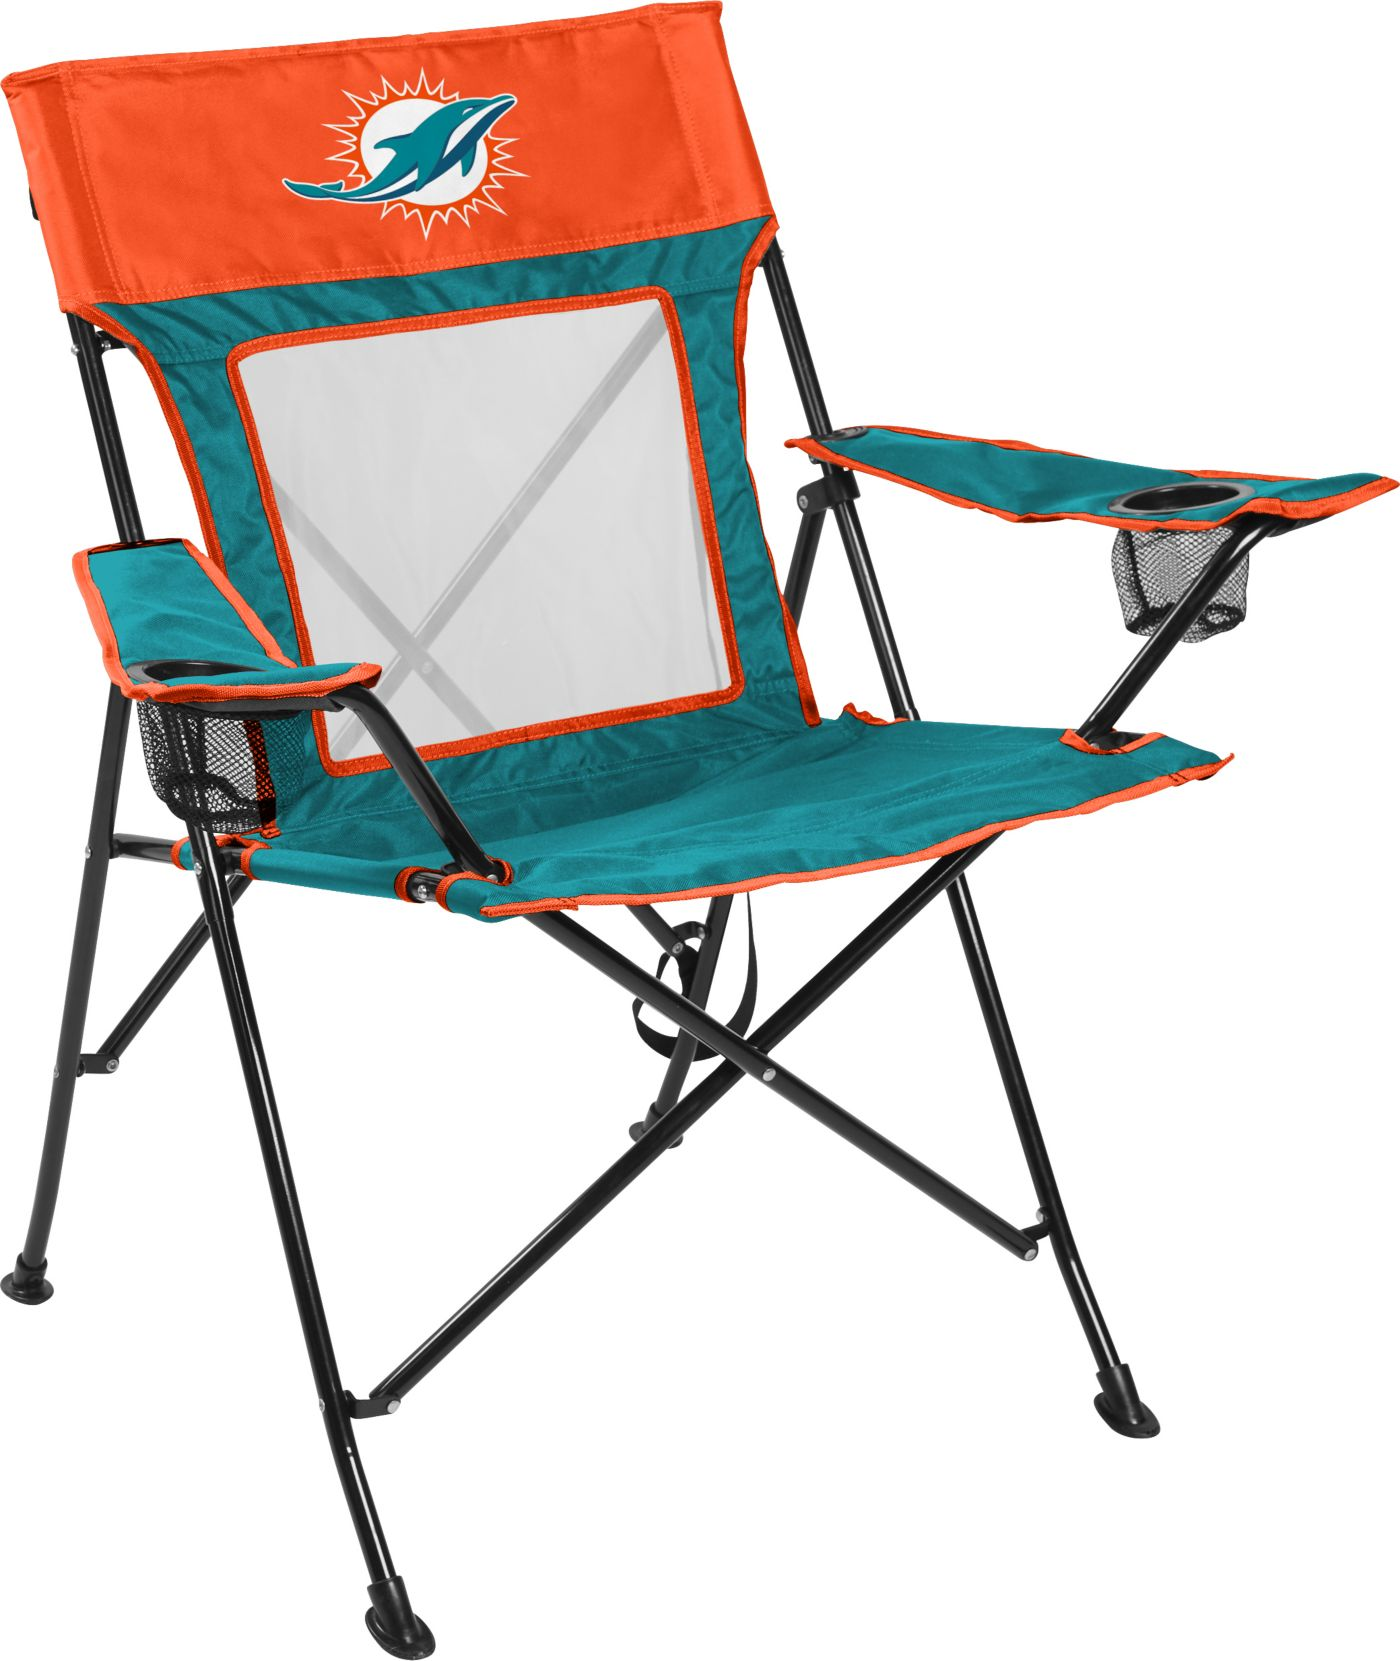 Rawlings Miami Dolphins Game Changer Chair